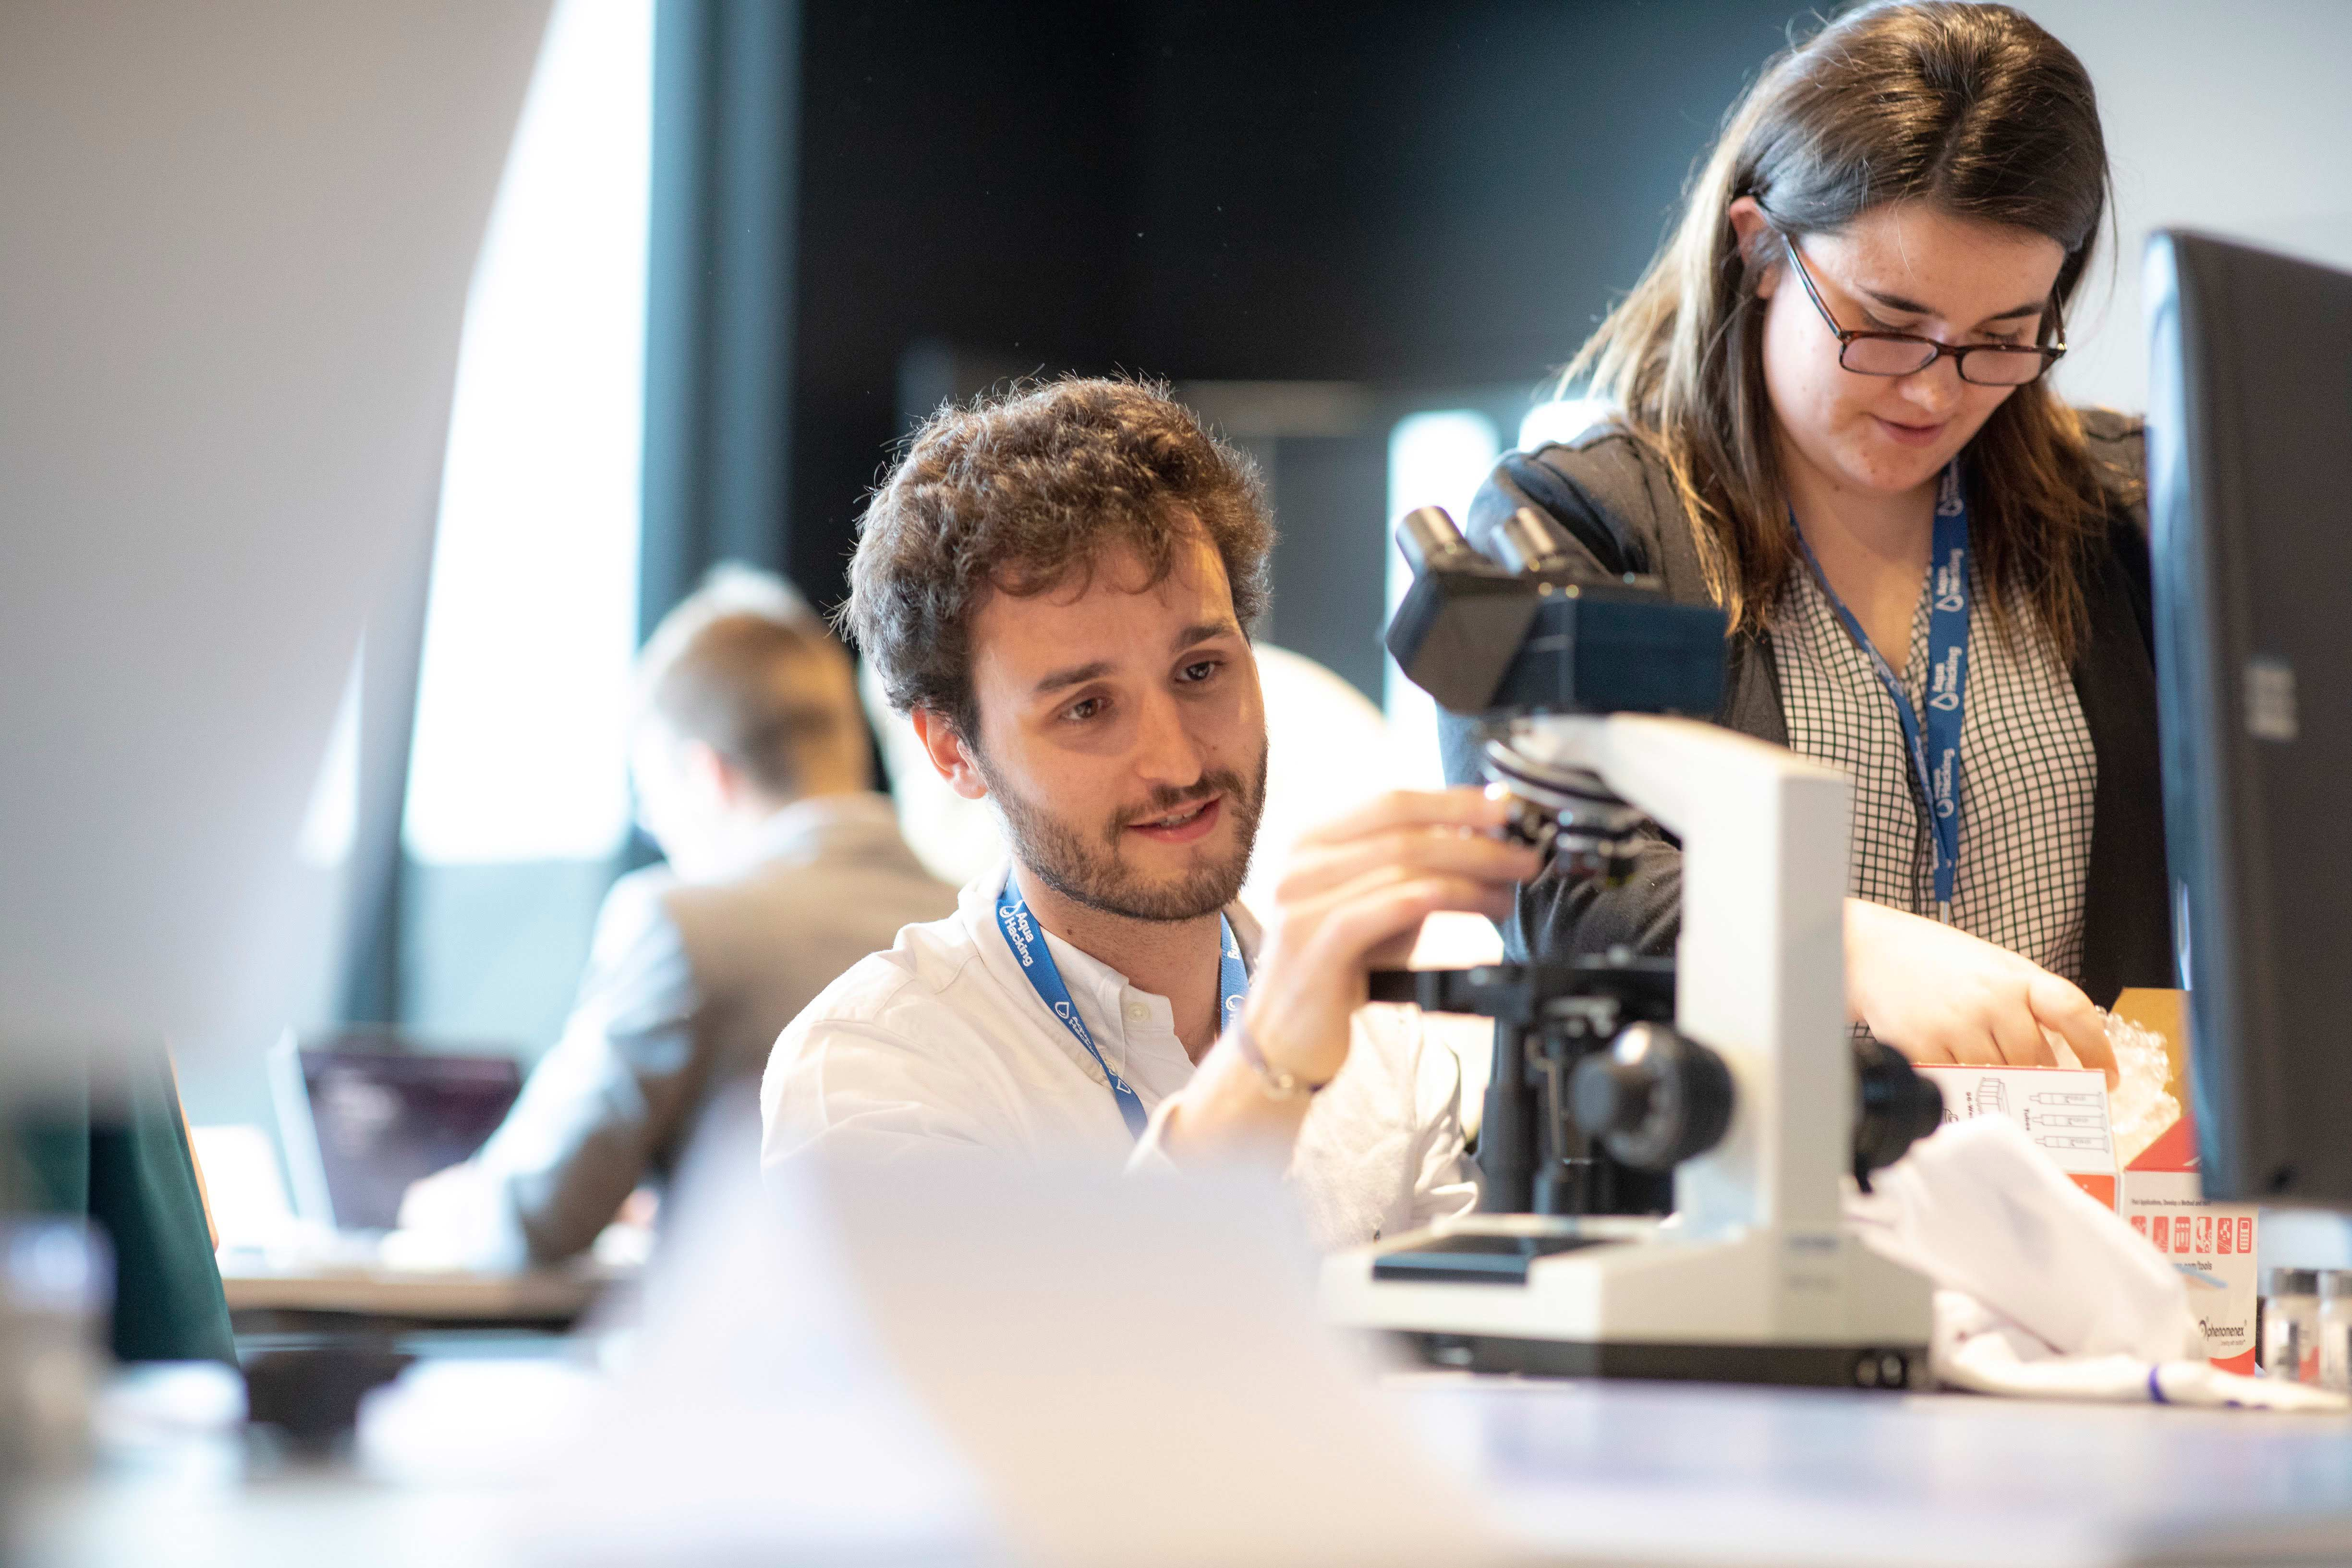 Young man using microscope during AquaHacking event